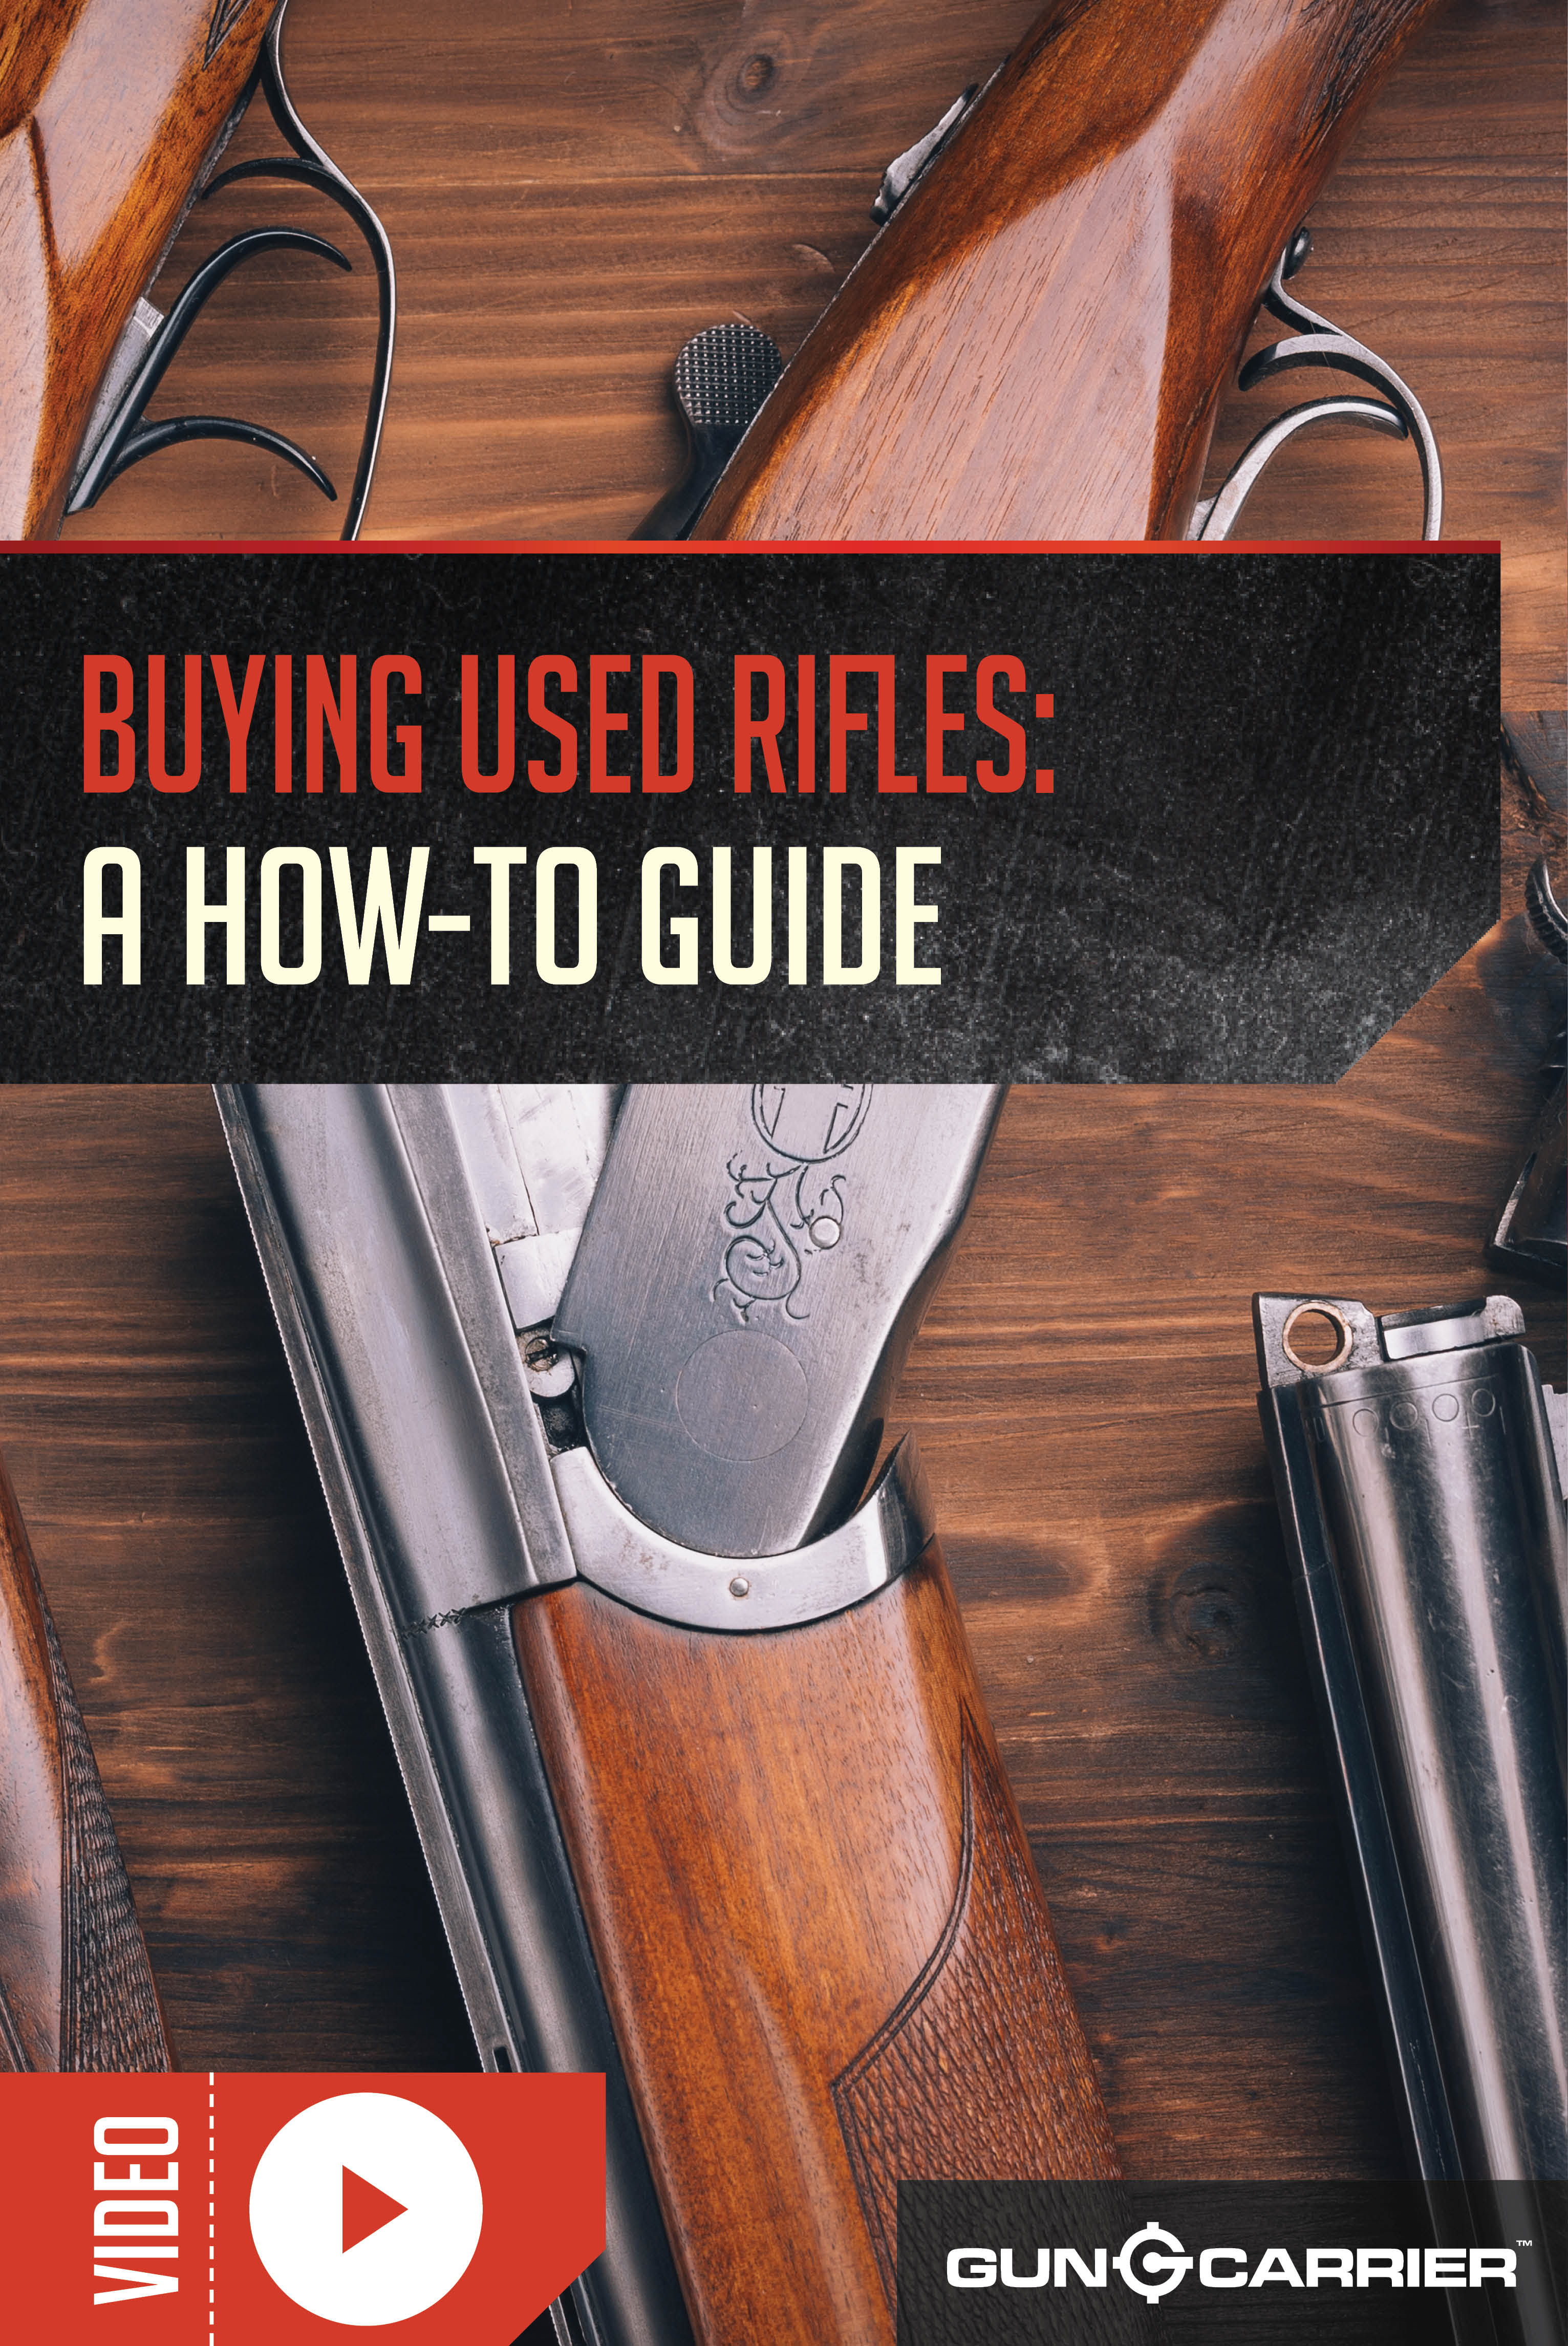 Buying a Used Rifle: What to Look For by Gun Carrier at https://guncarrier.com/buying-used-rifle-look/